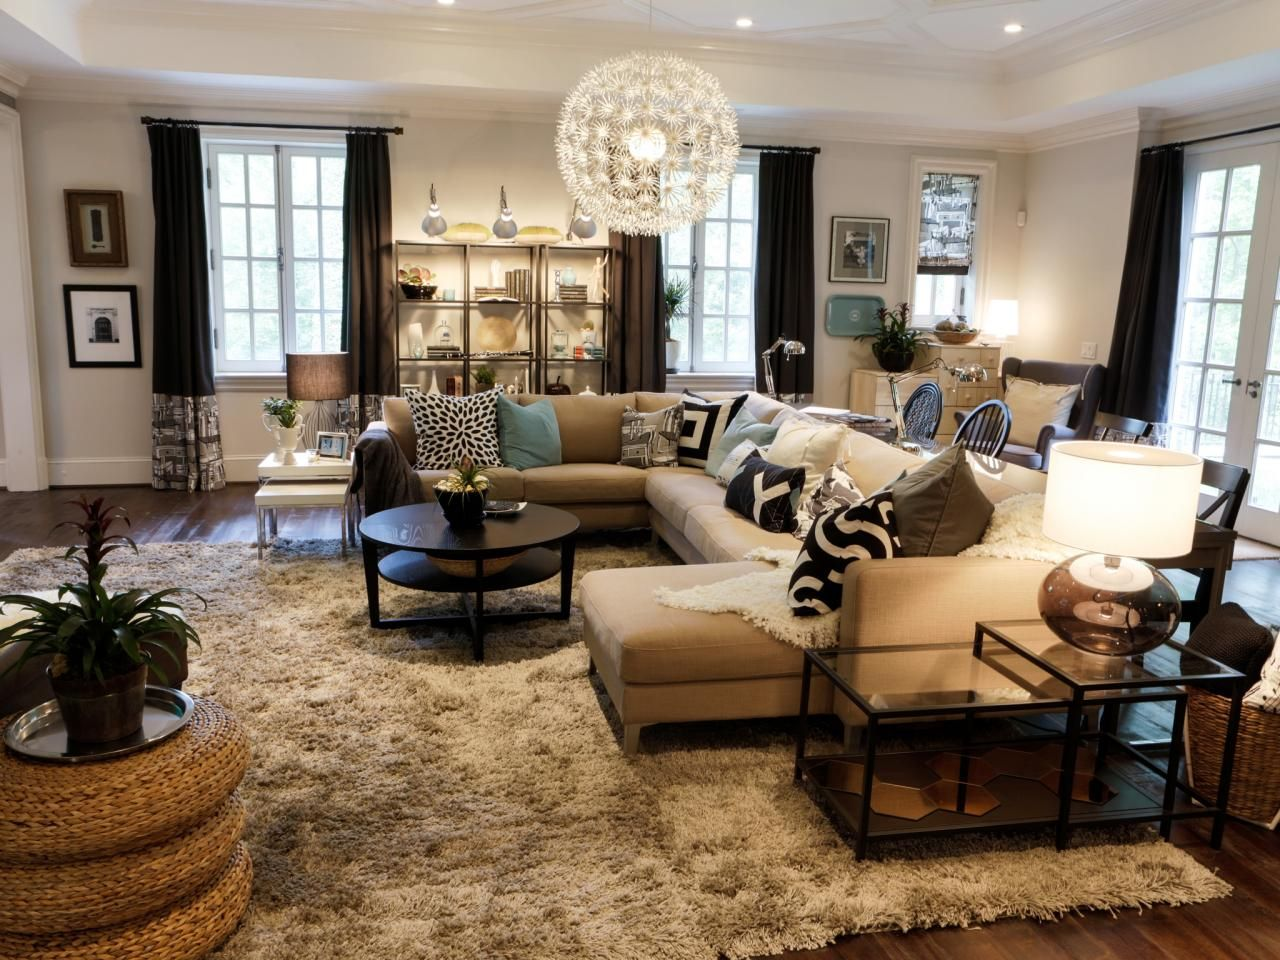 Eclectic Living Space With Bold Throw Pillows And Pendant Light